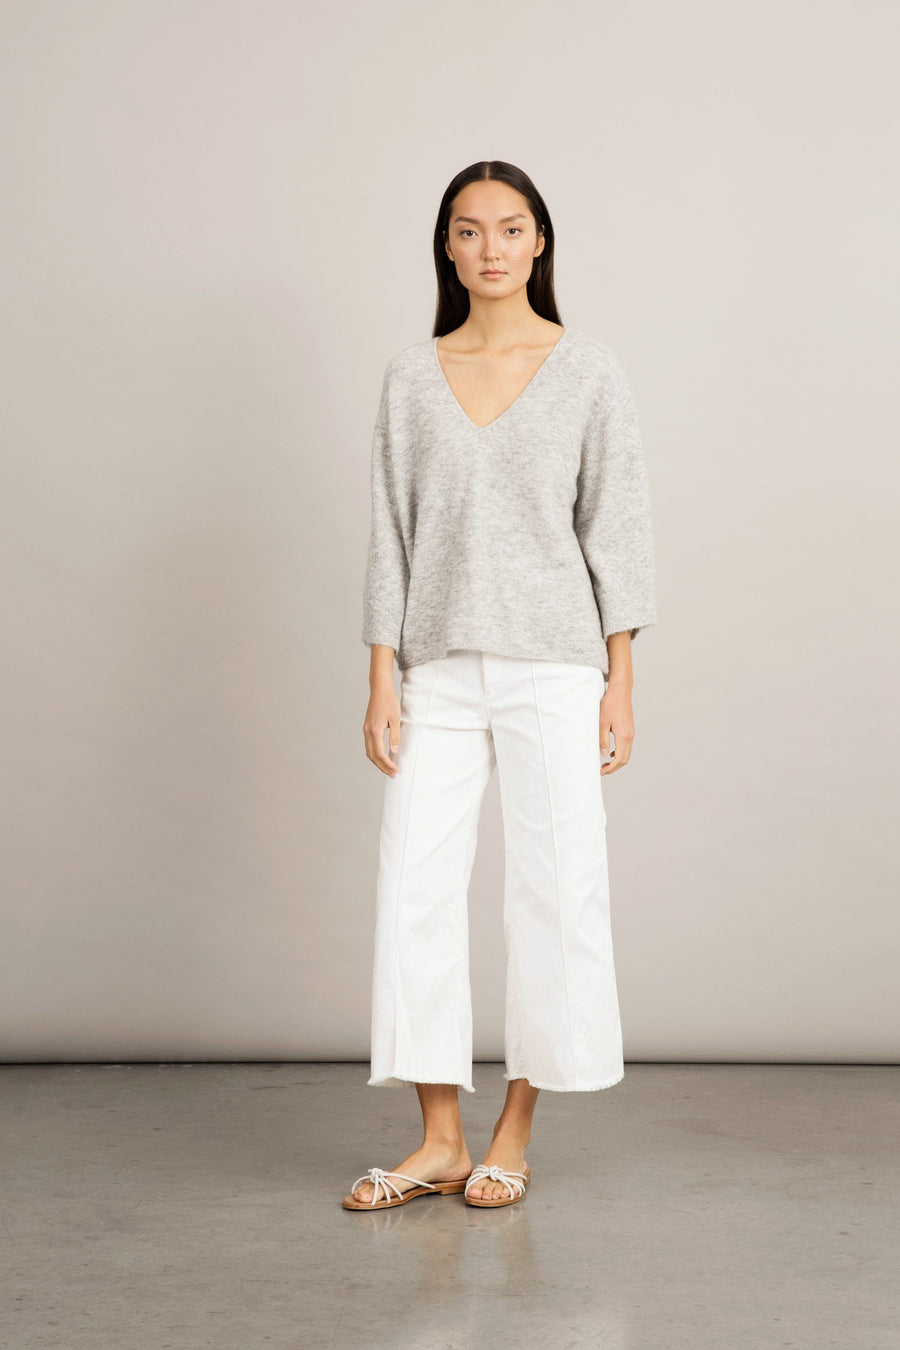 ENNA SWEATER - LIGHT GREY Sweater Stylein